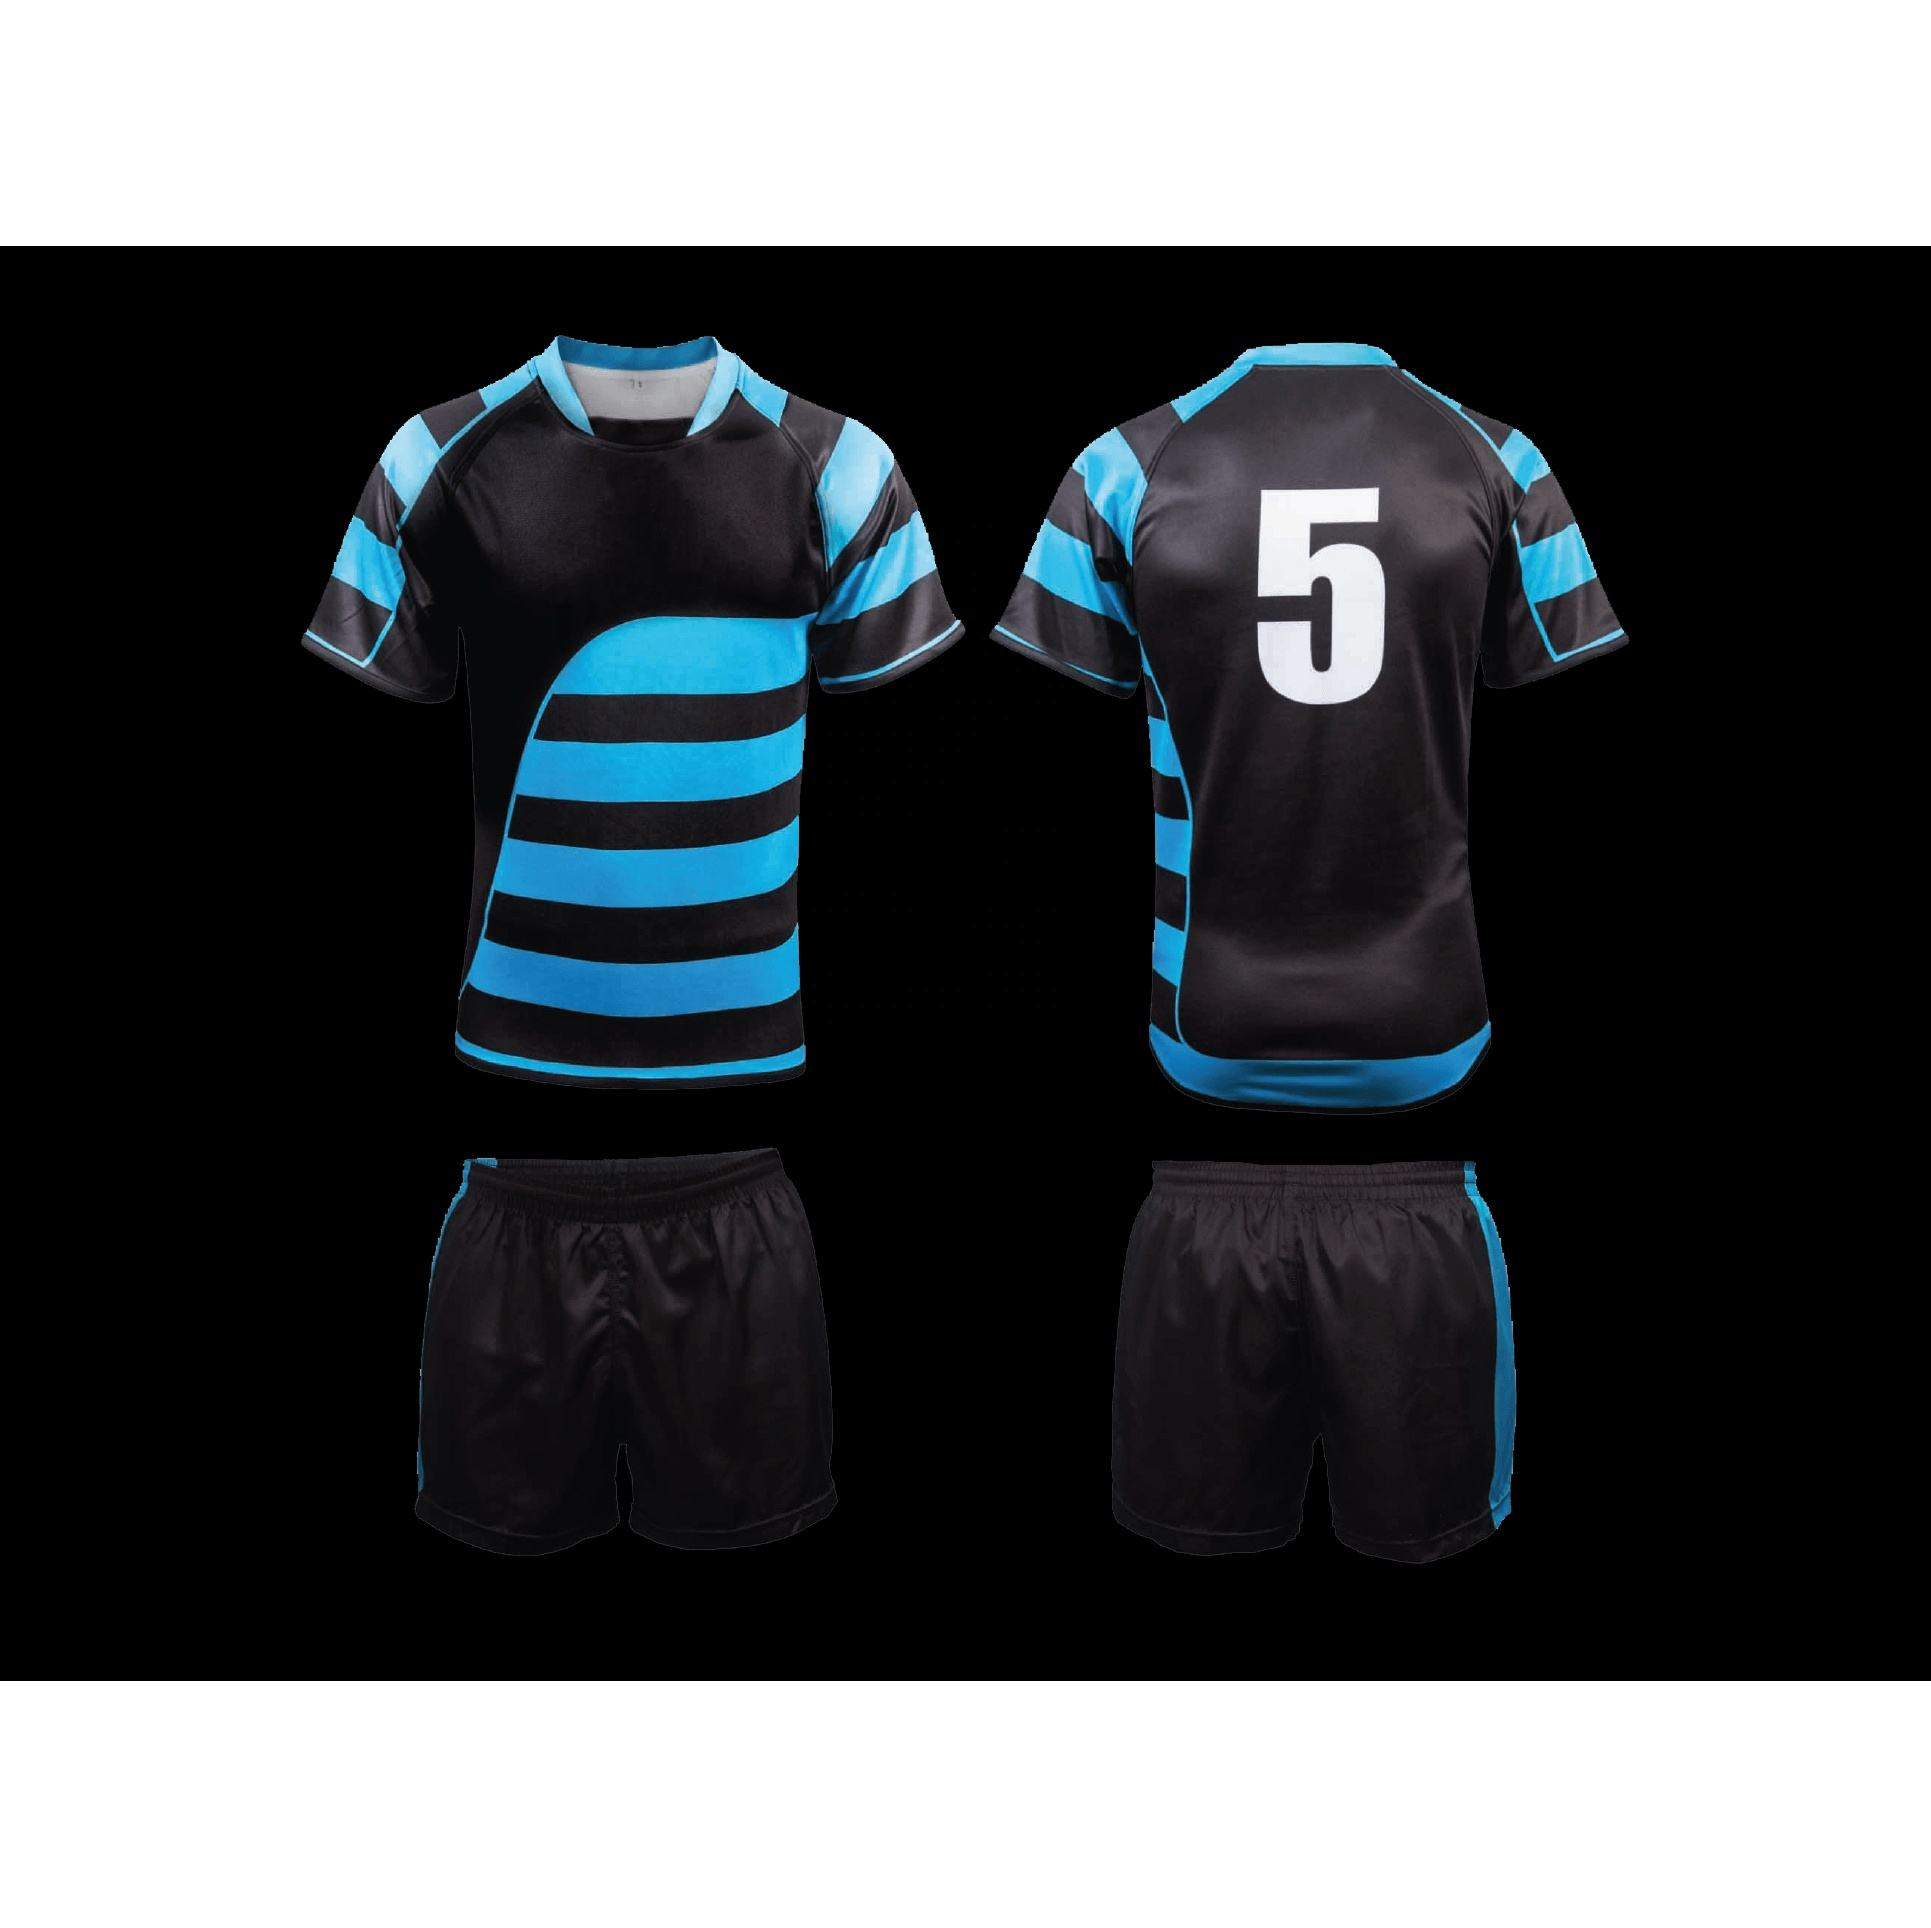 JERSEY RUGBY Names Custom AND HOME Numbers Top-Quality Print Size-S-5xl